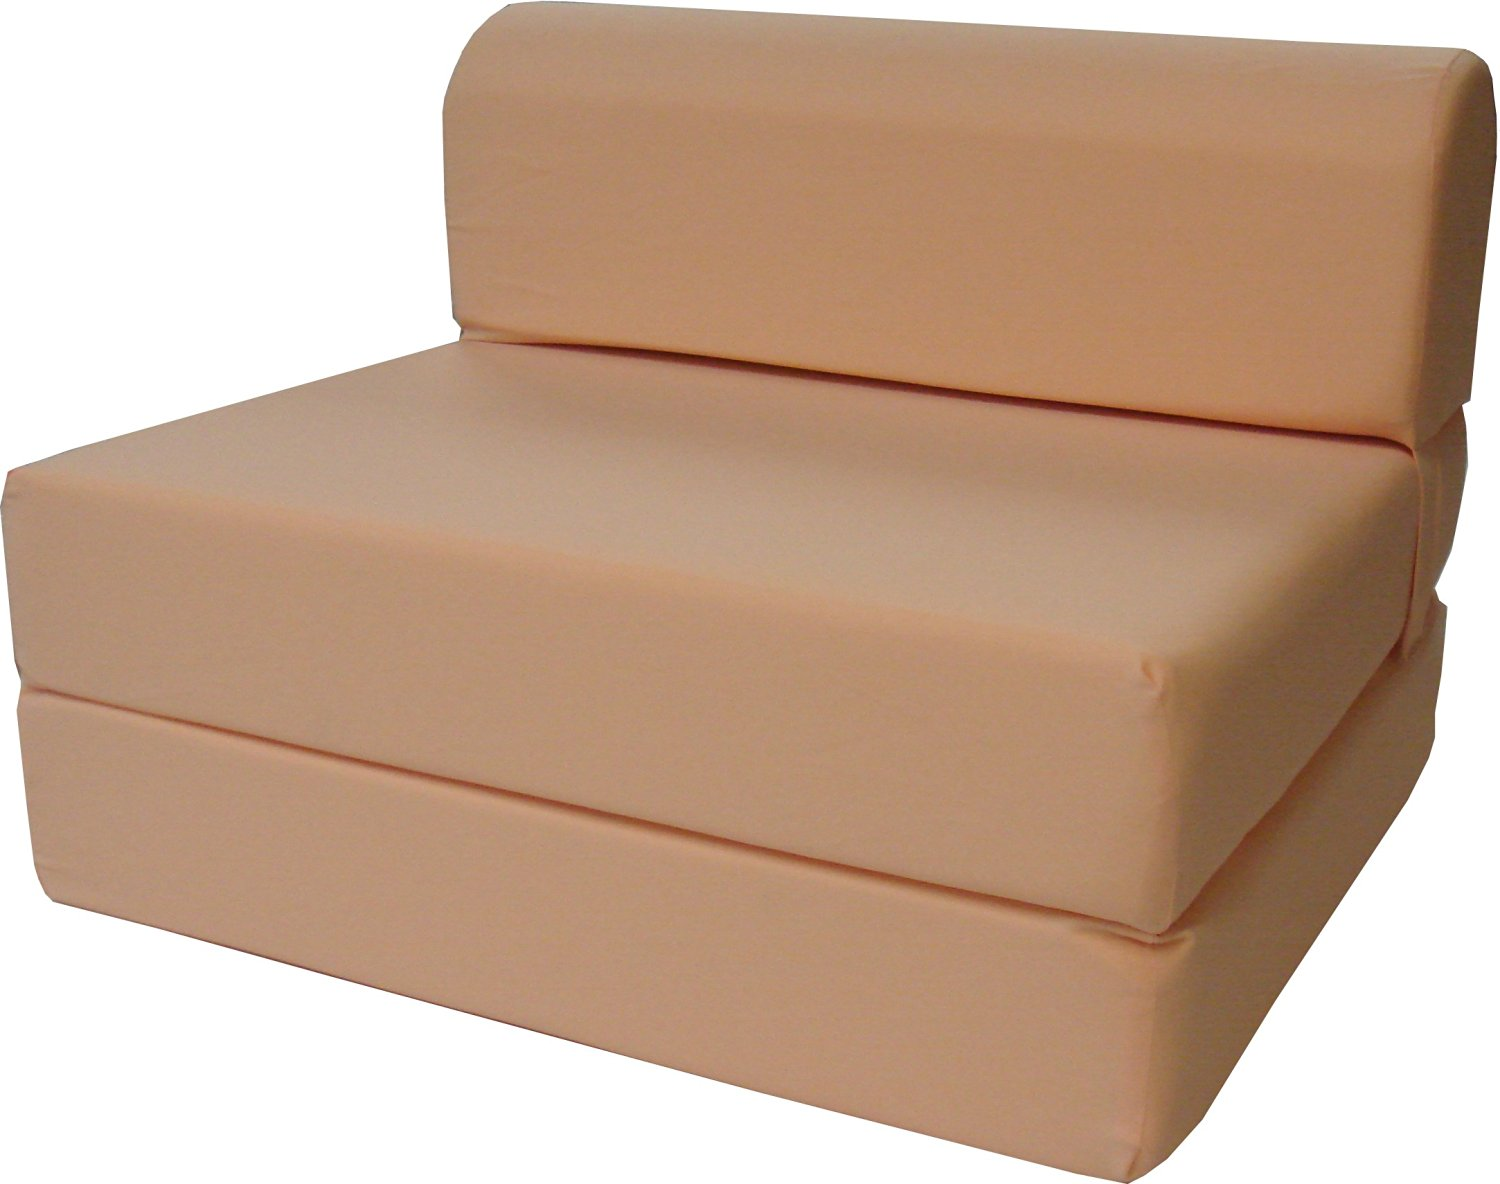 Stupendous Buy 6 Thick X 36 Wide X 70 Long Twin Size Peach Sleeper Alphanode Cool Chair Designs And Ideas Alphanodeonline